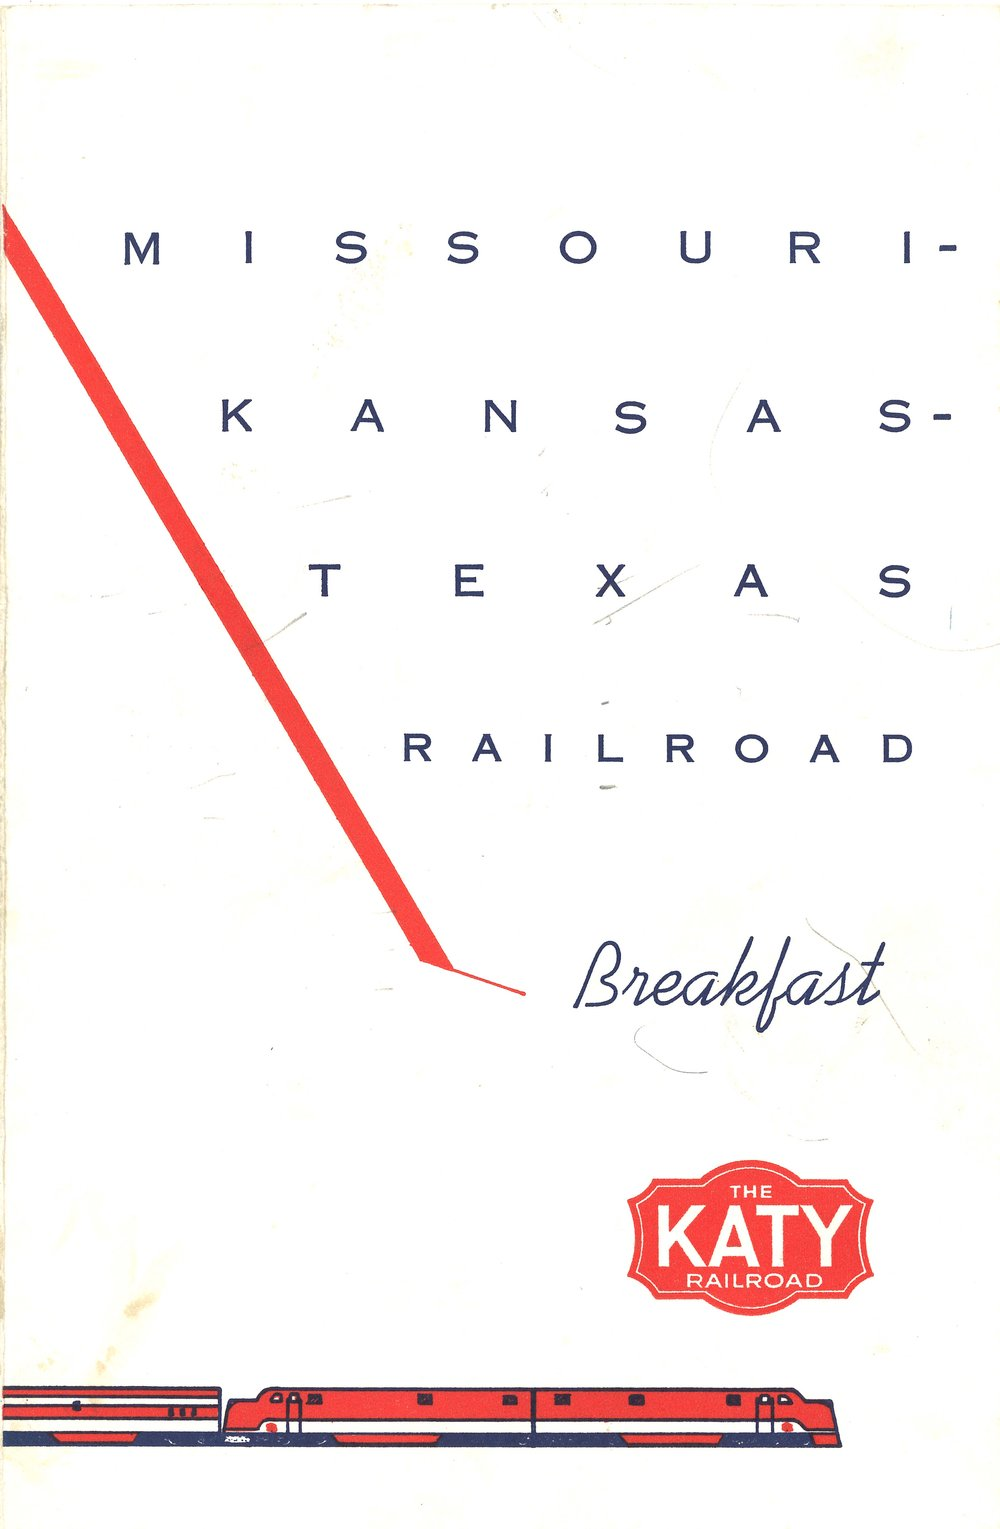 MKT Railroad Katy Railroad Breakfast Menu_sm1.jpg